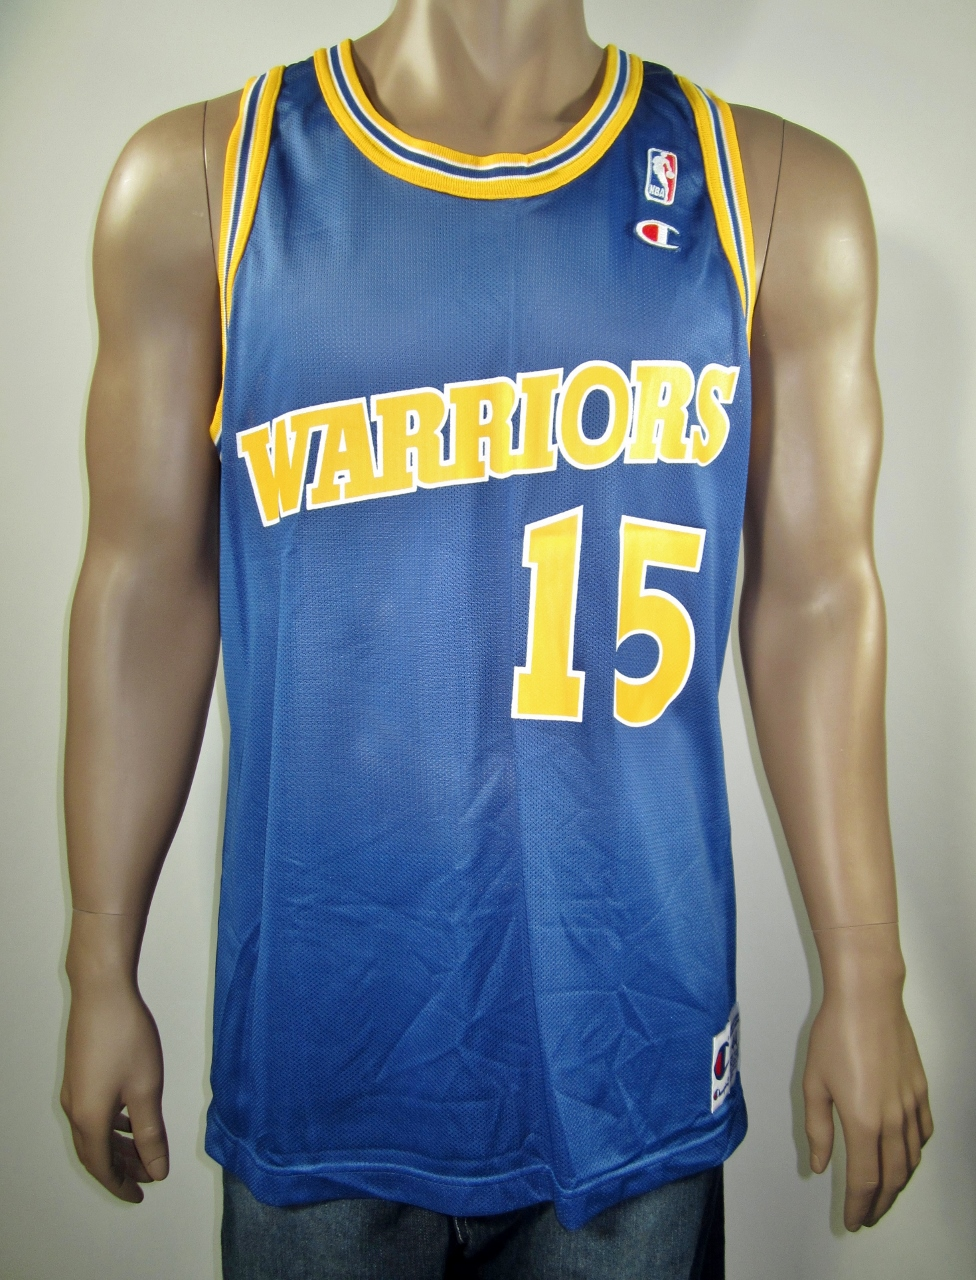 Latrell Sprewell Golden State Warriors Champion Jersey NWT on Storenvy 7c483f02d